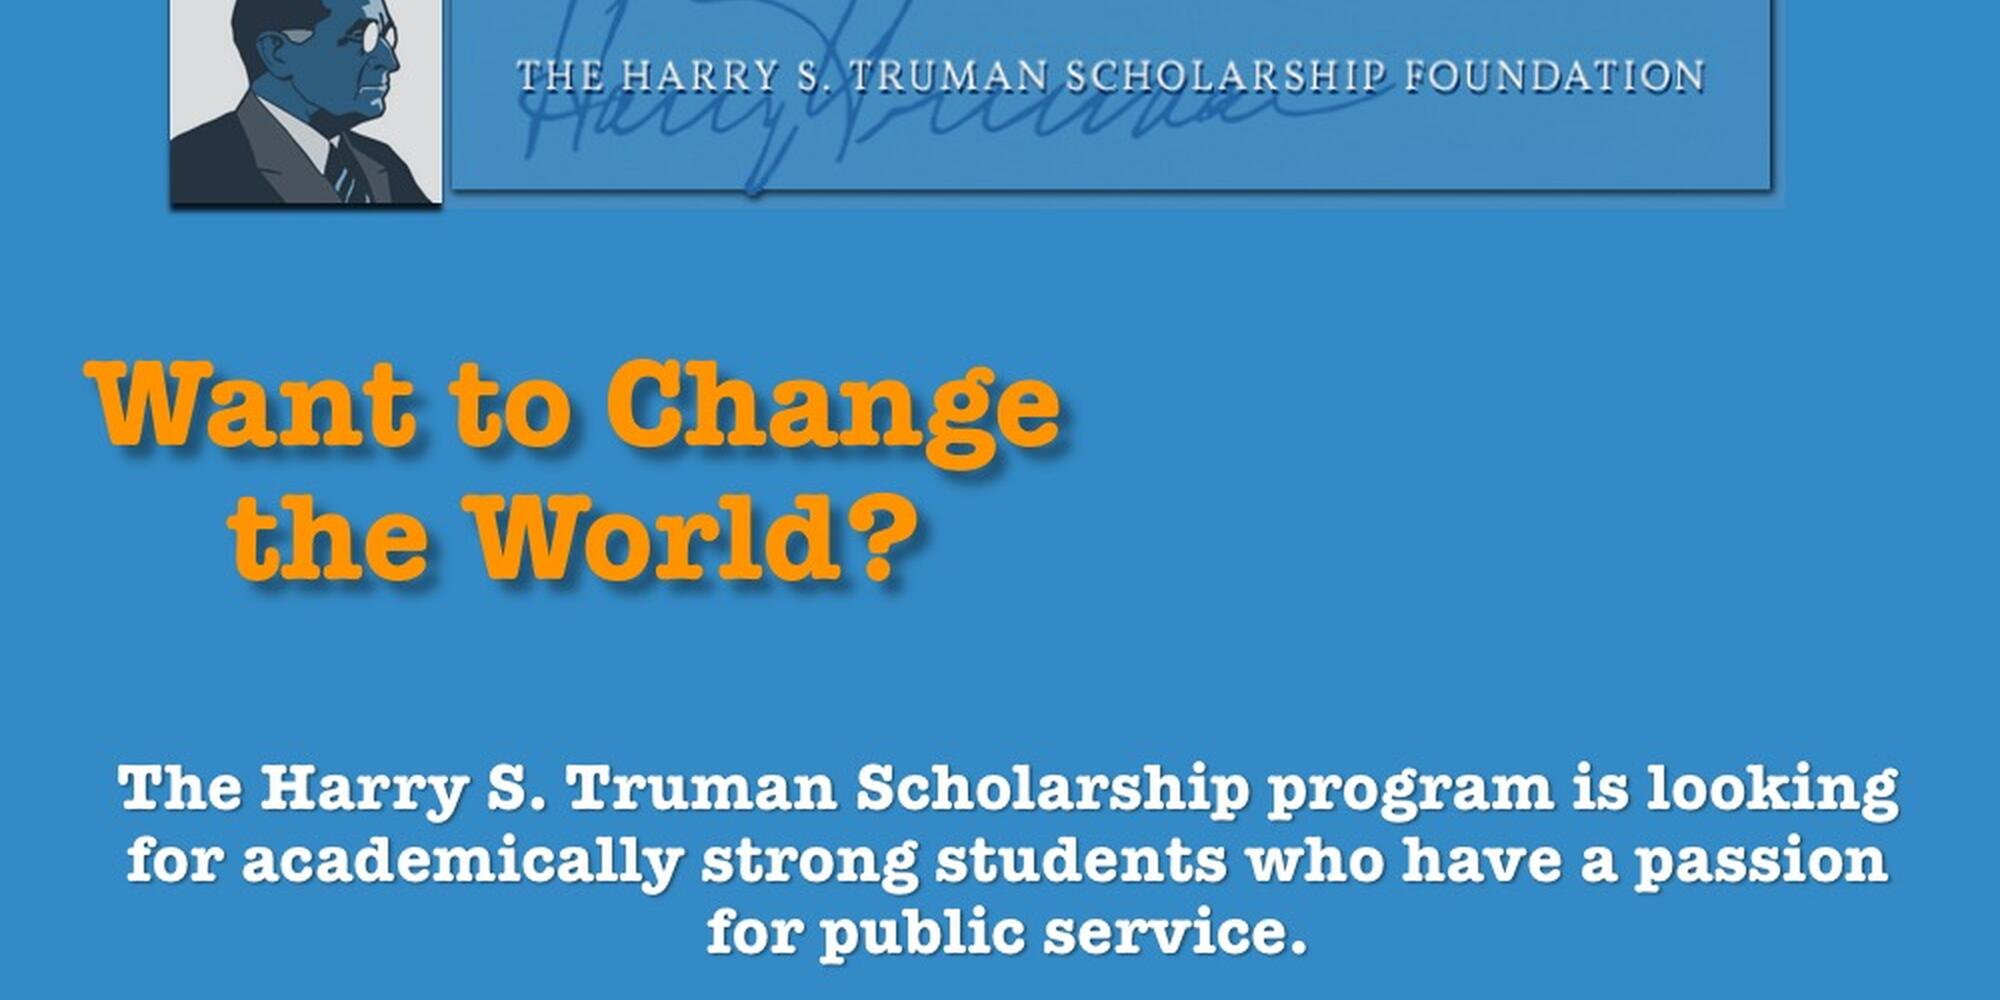 Text with scholarship summary and picture of president Truman